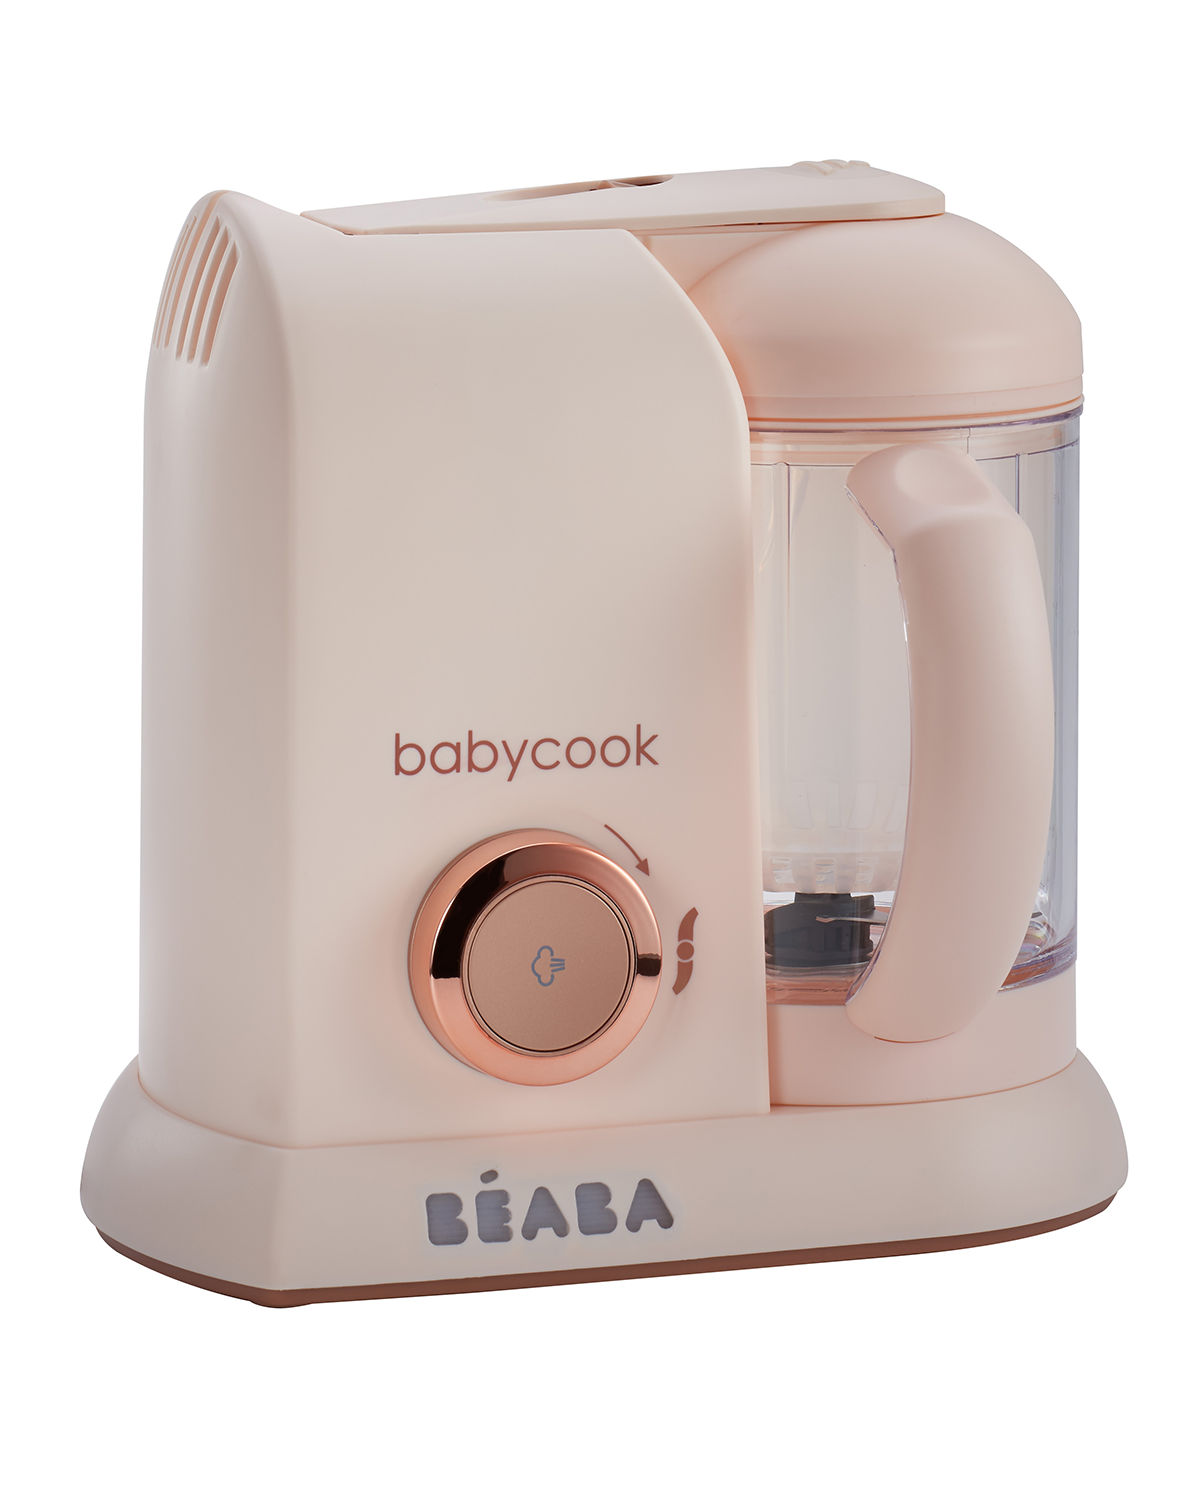 Limited Edition Babycook Baby Food Maker